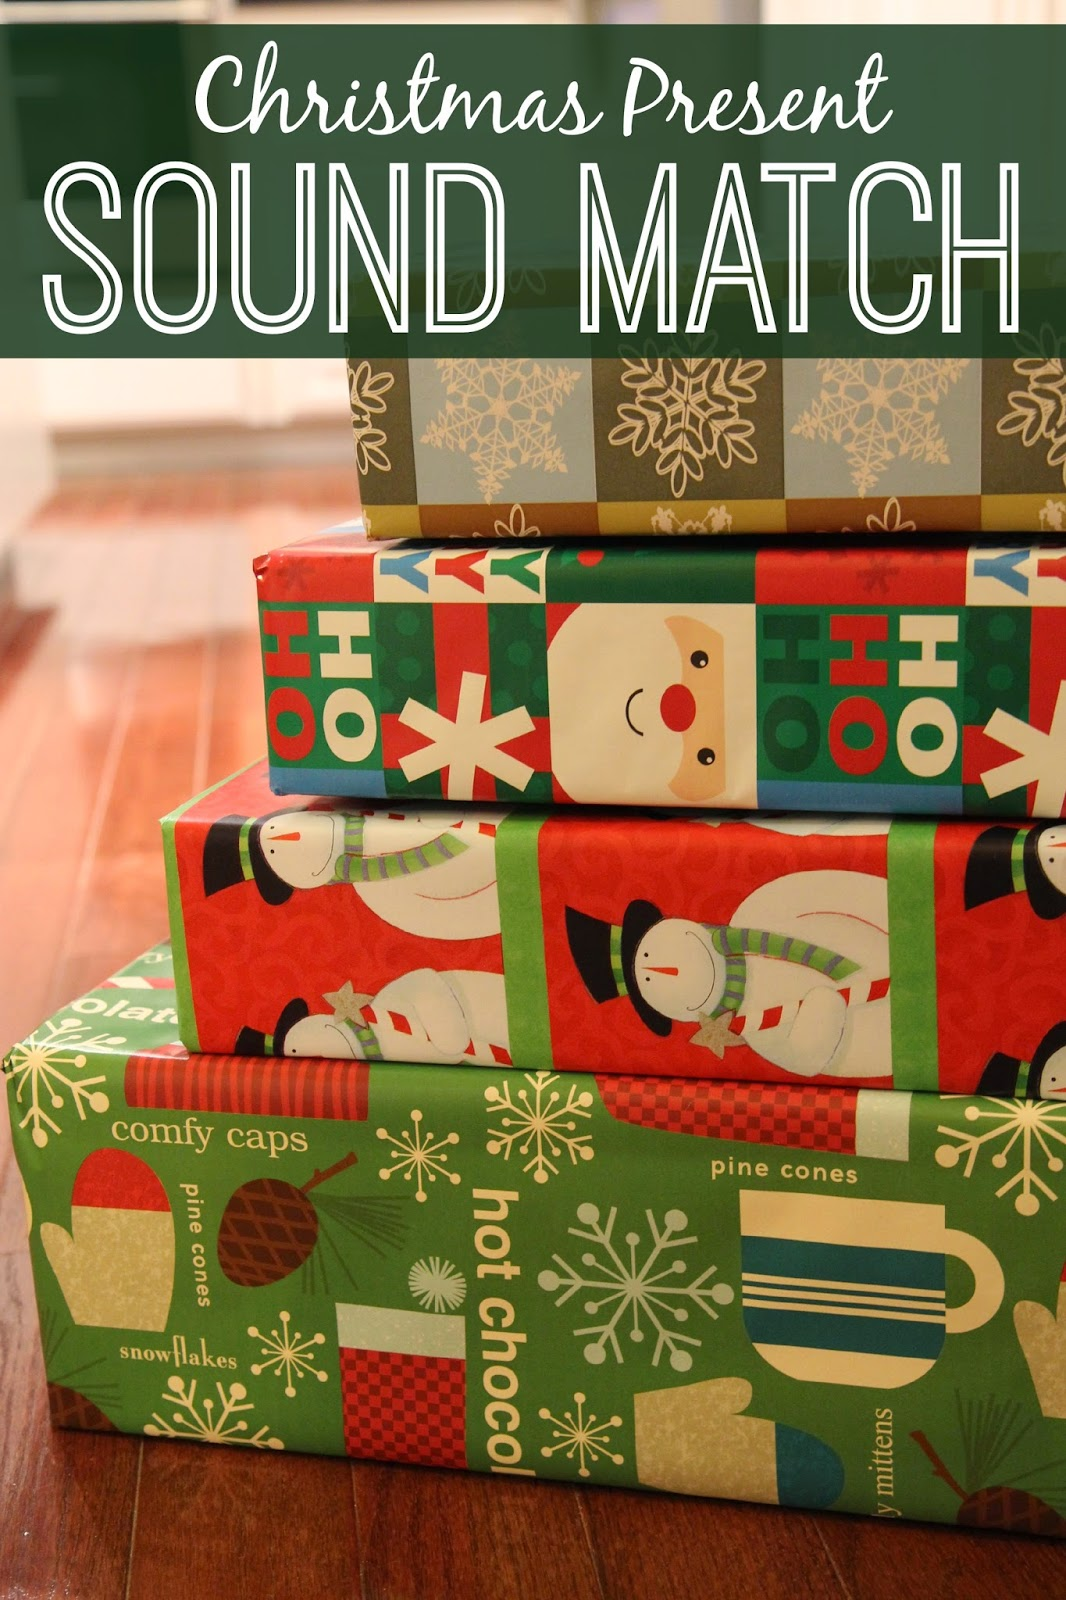 Toddler Approved!: Christmas Present Sound Match for Toddlers